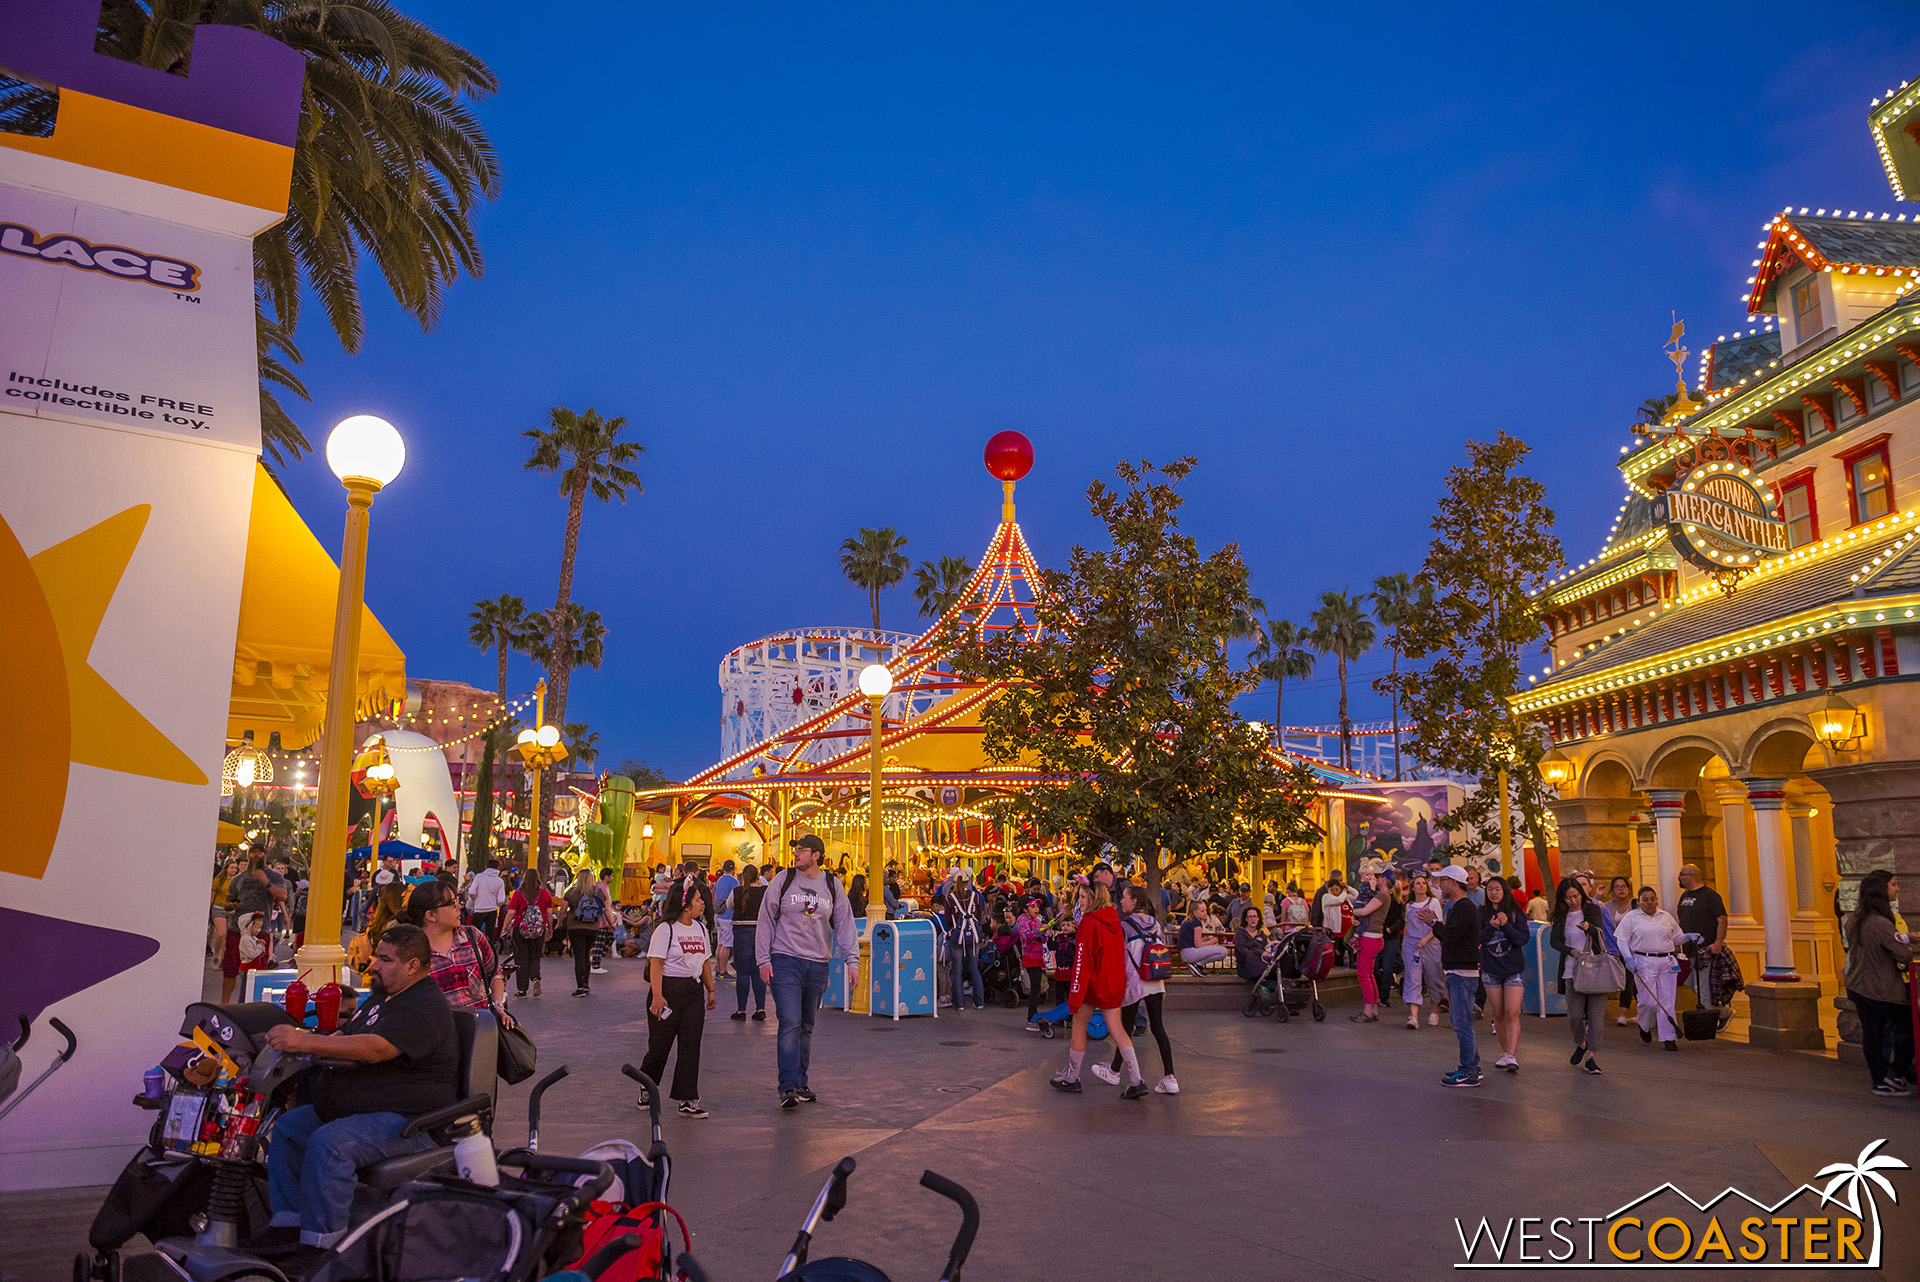 """I do wish the Carousel theming would blend in better with the other aesthetics present in or around any particular area.  But Pixar Pier is """"synergy"""" by various designs.  I just don't think it quite works from this overview."""